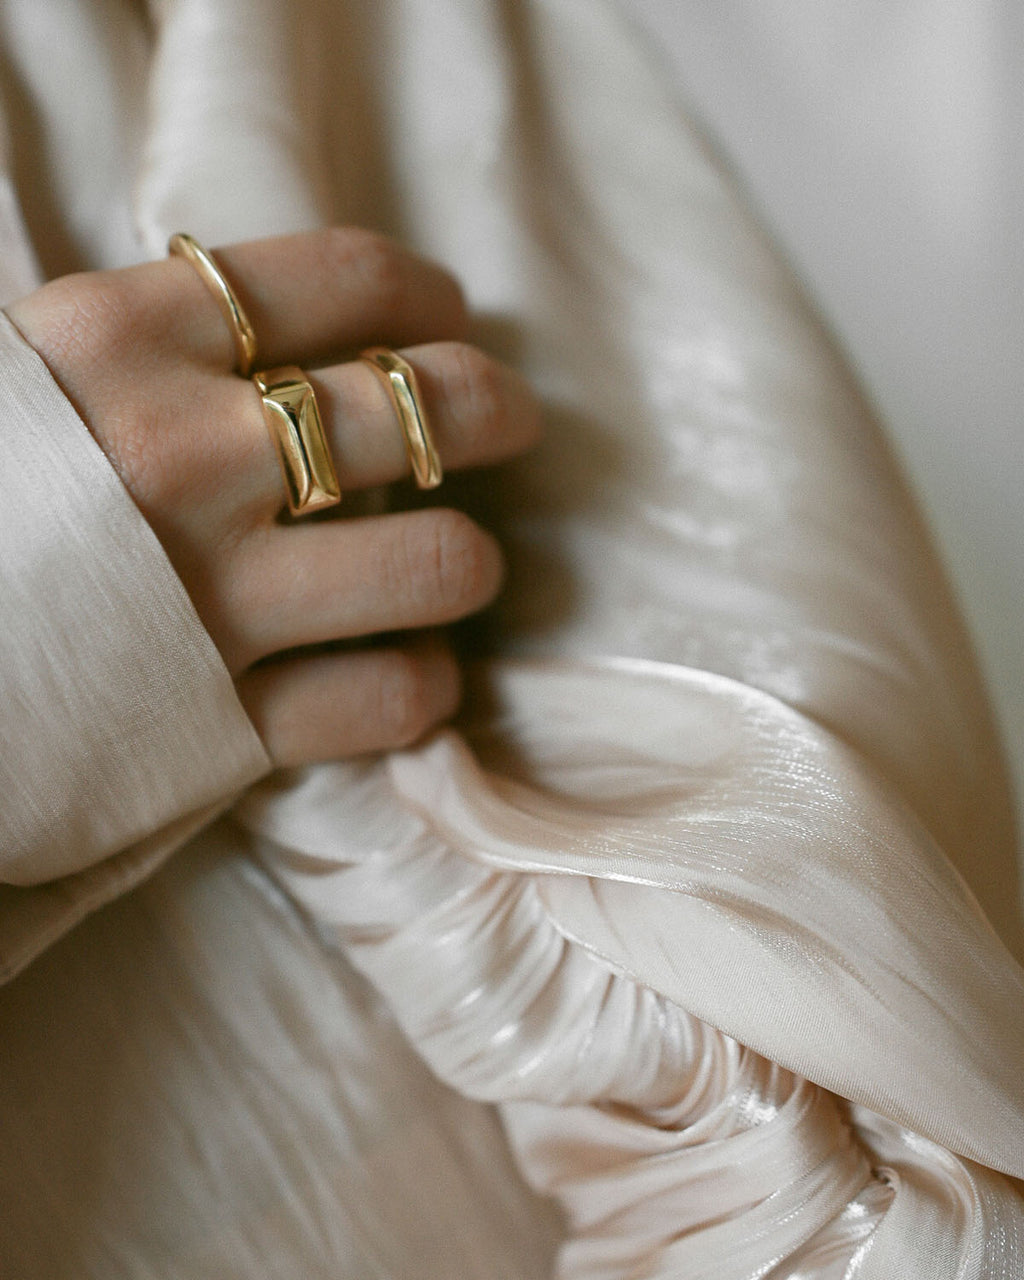 Layer effortlessly with the Sage rings that come in a set of 3 - www.thehexad.com